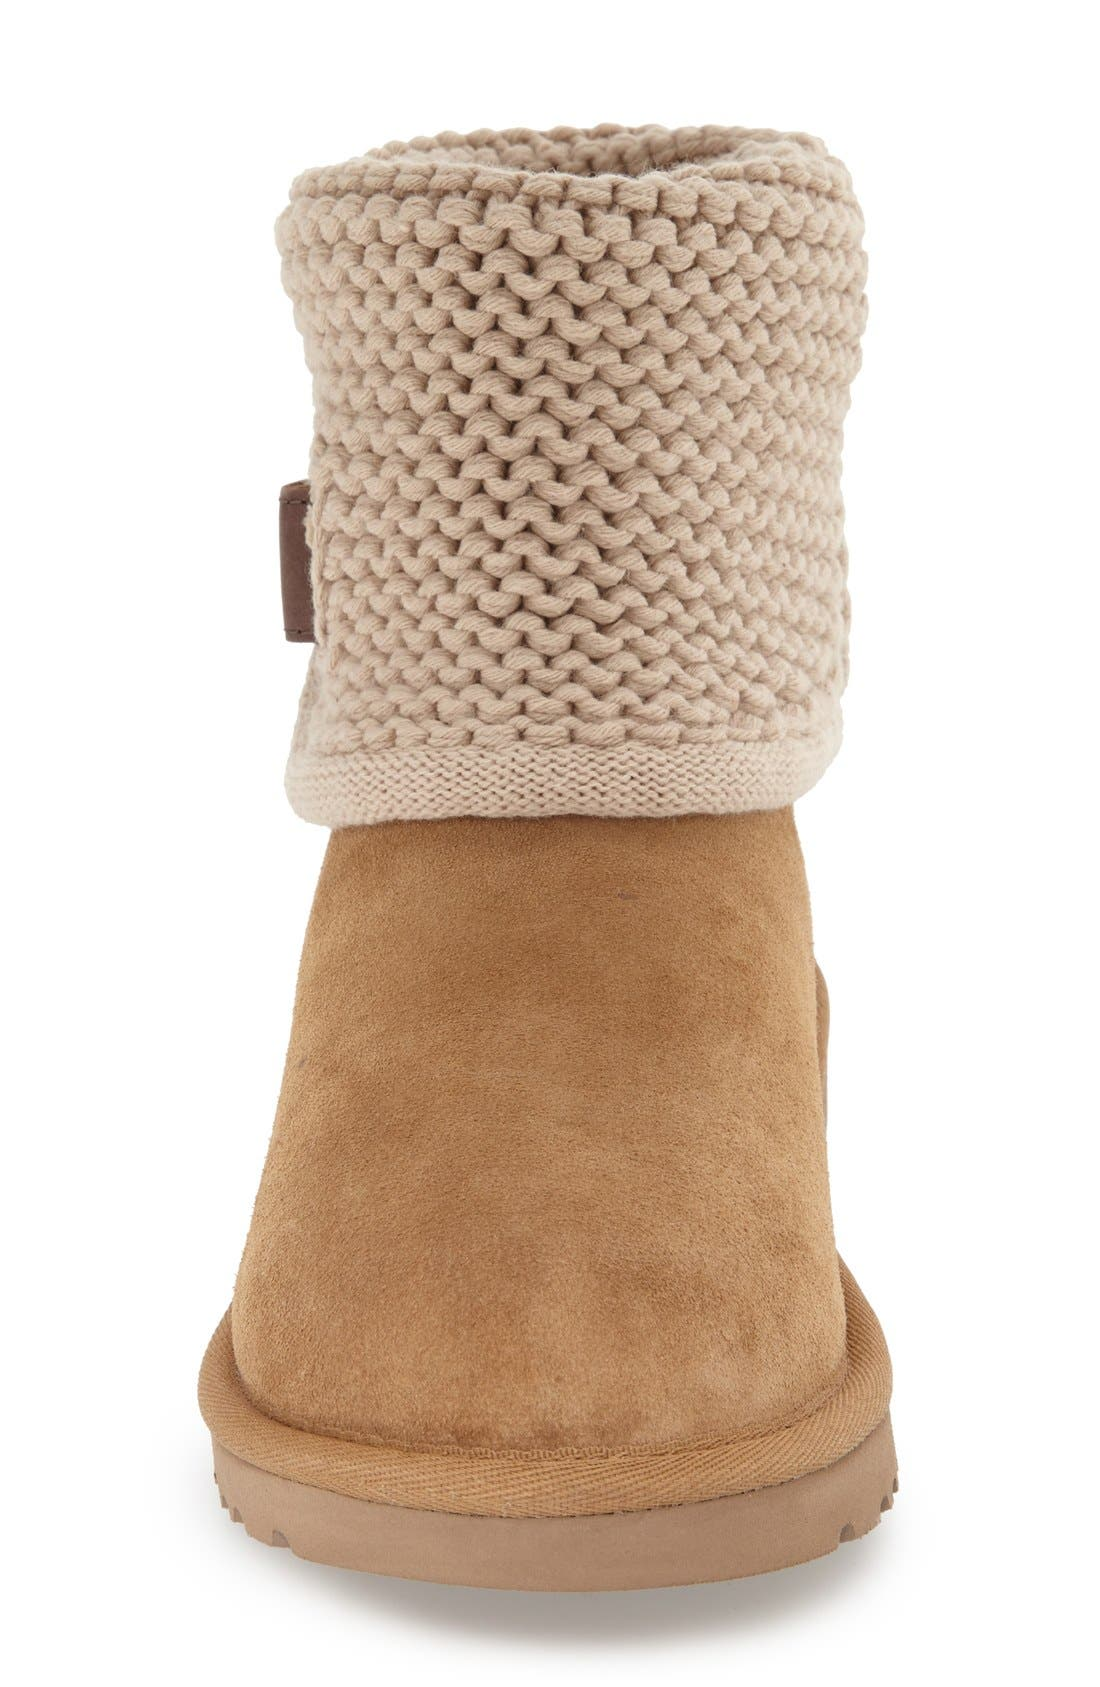 Shaina Knit Cuff Bootie,                             Alternate thumbnail 10, color,